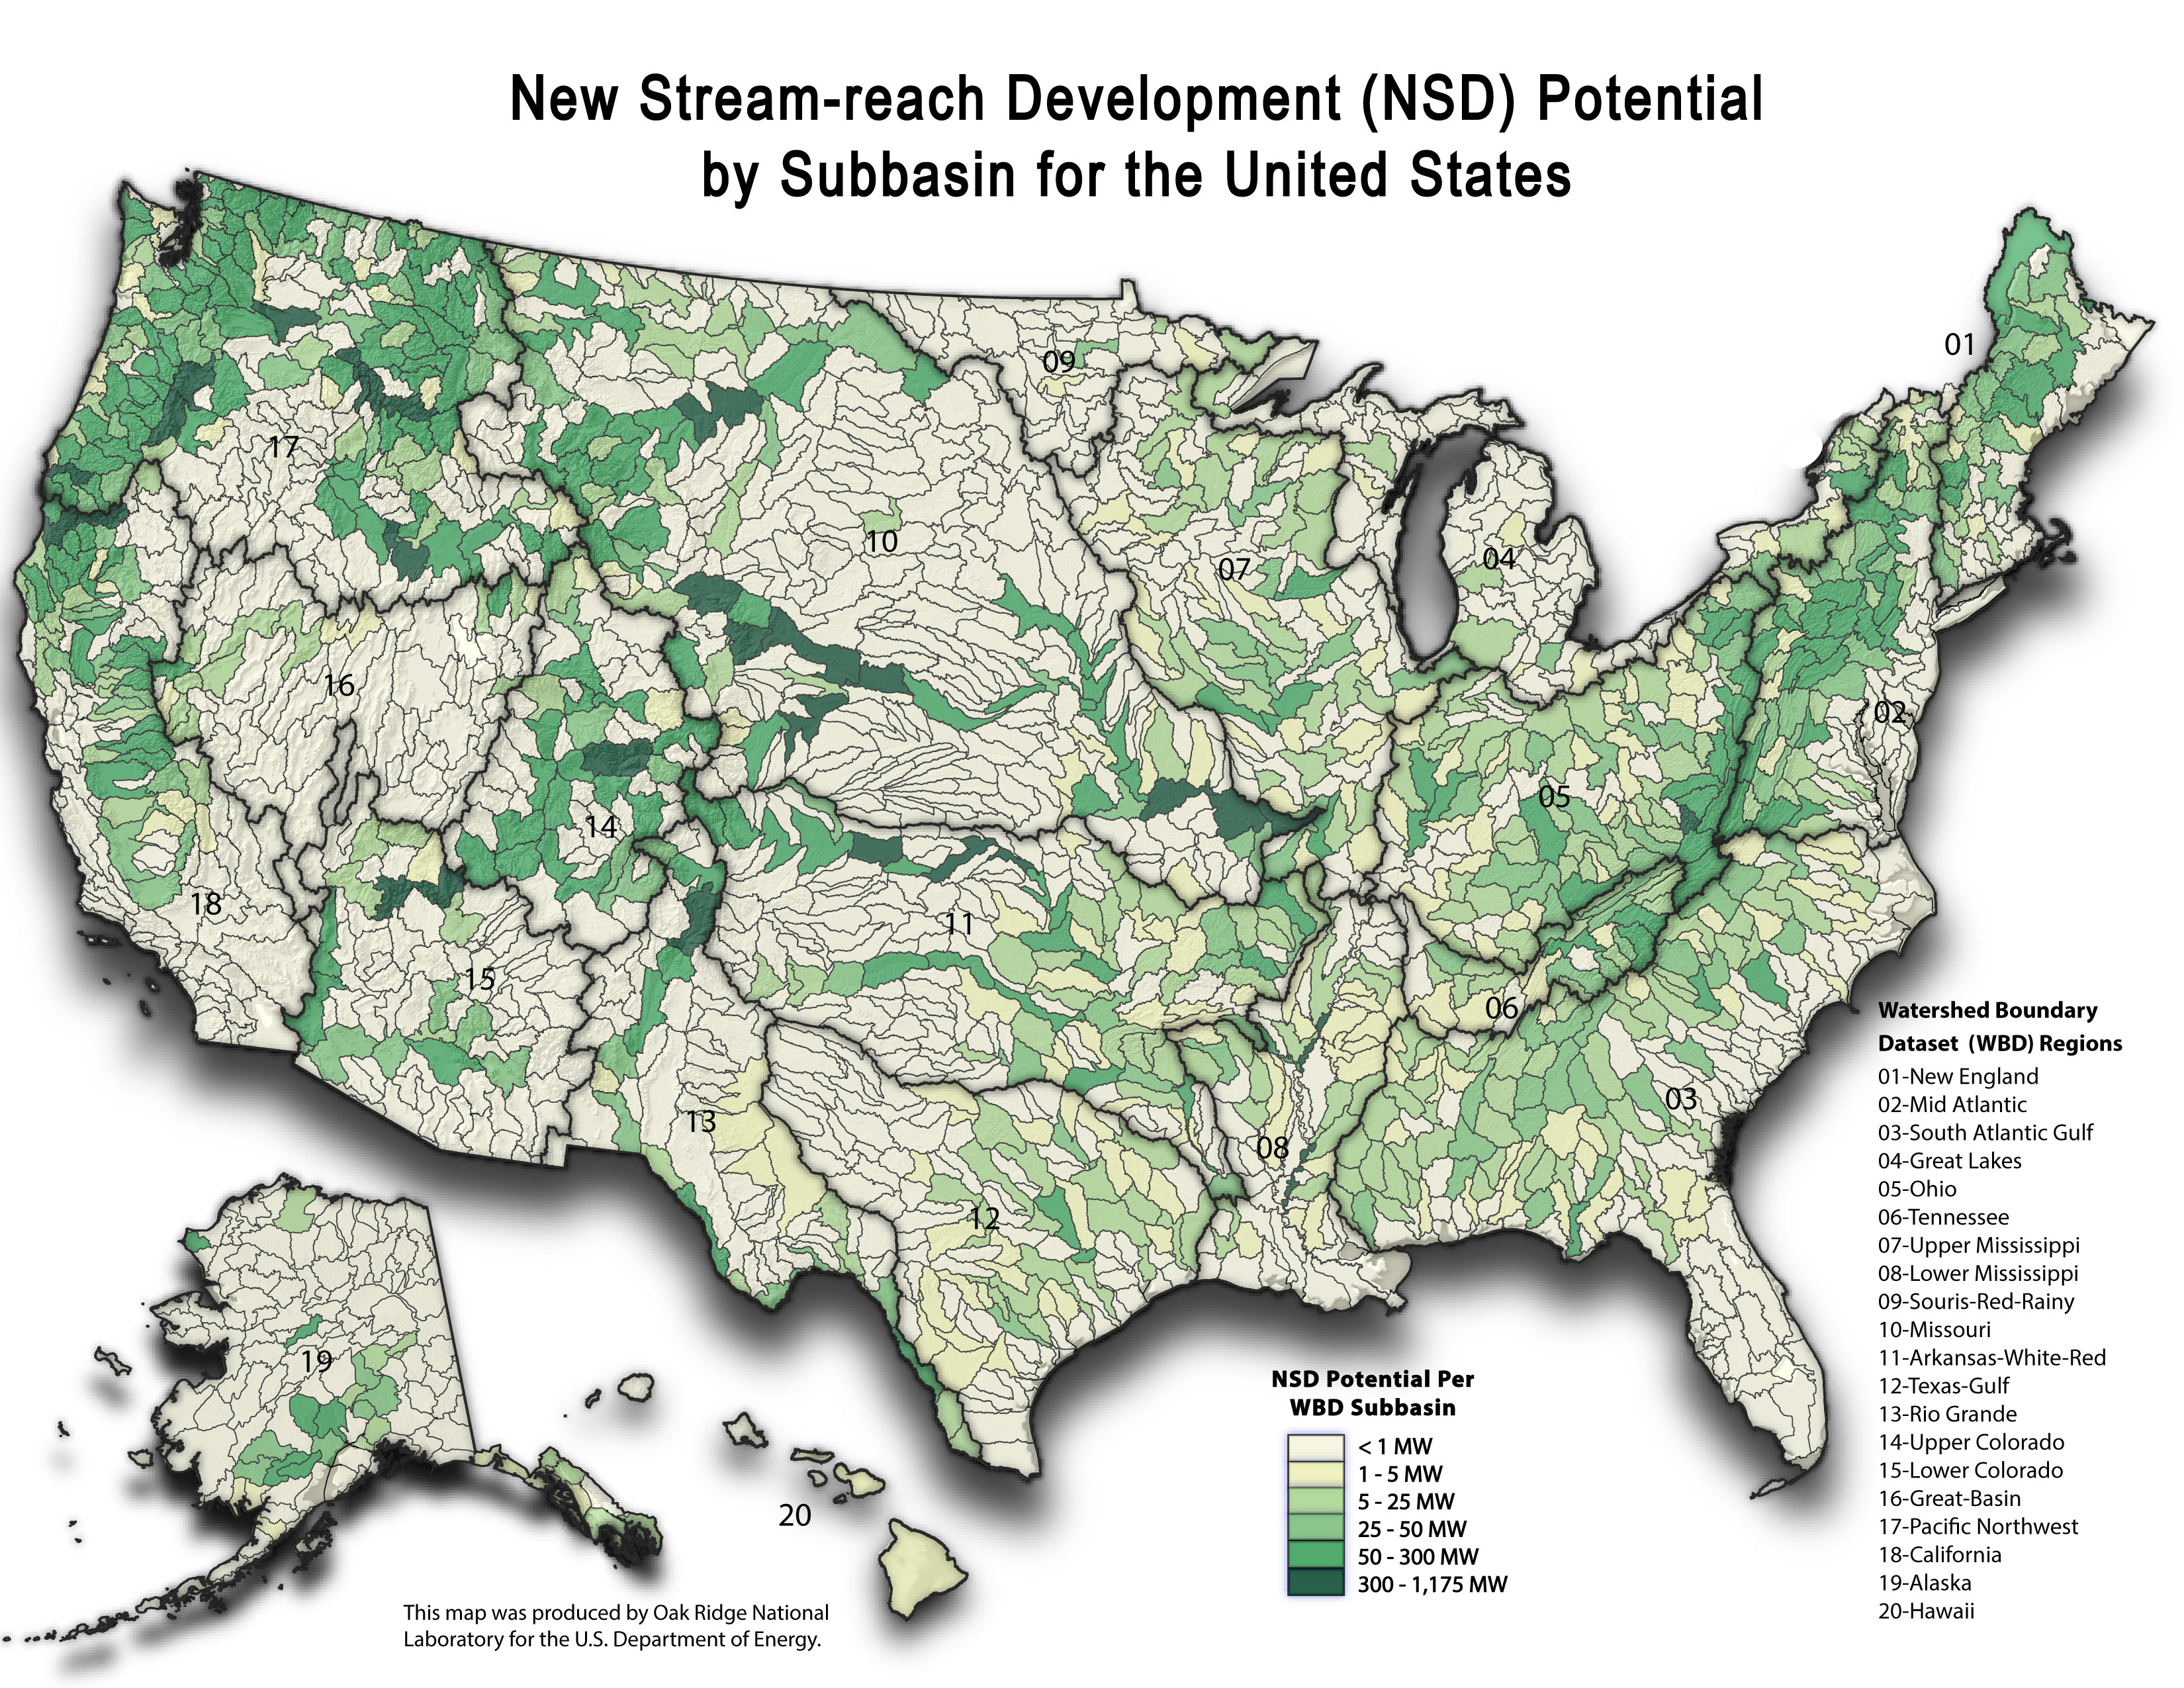 Map of new stream-rich development (SRD) potential by subbasin for the United States